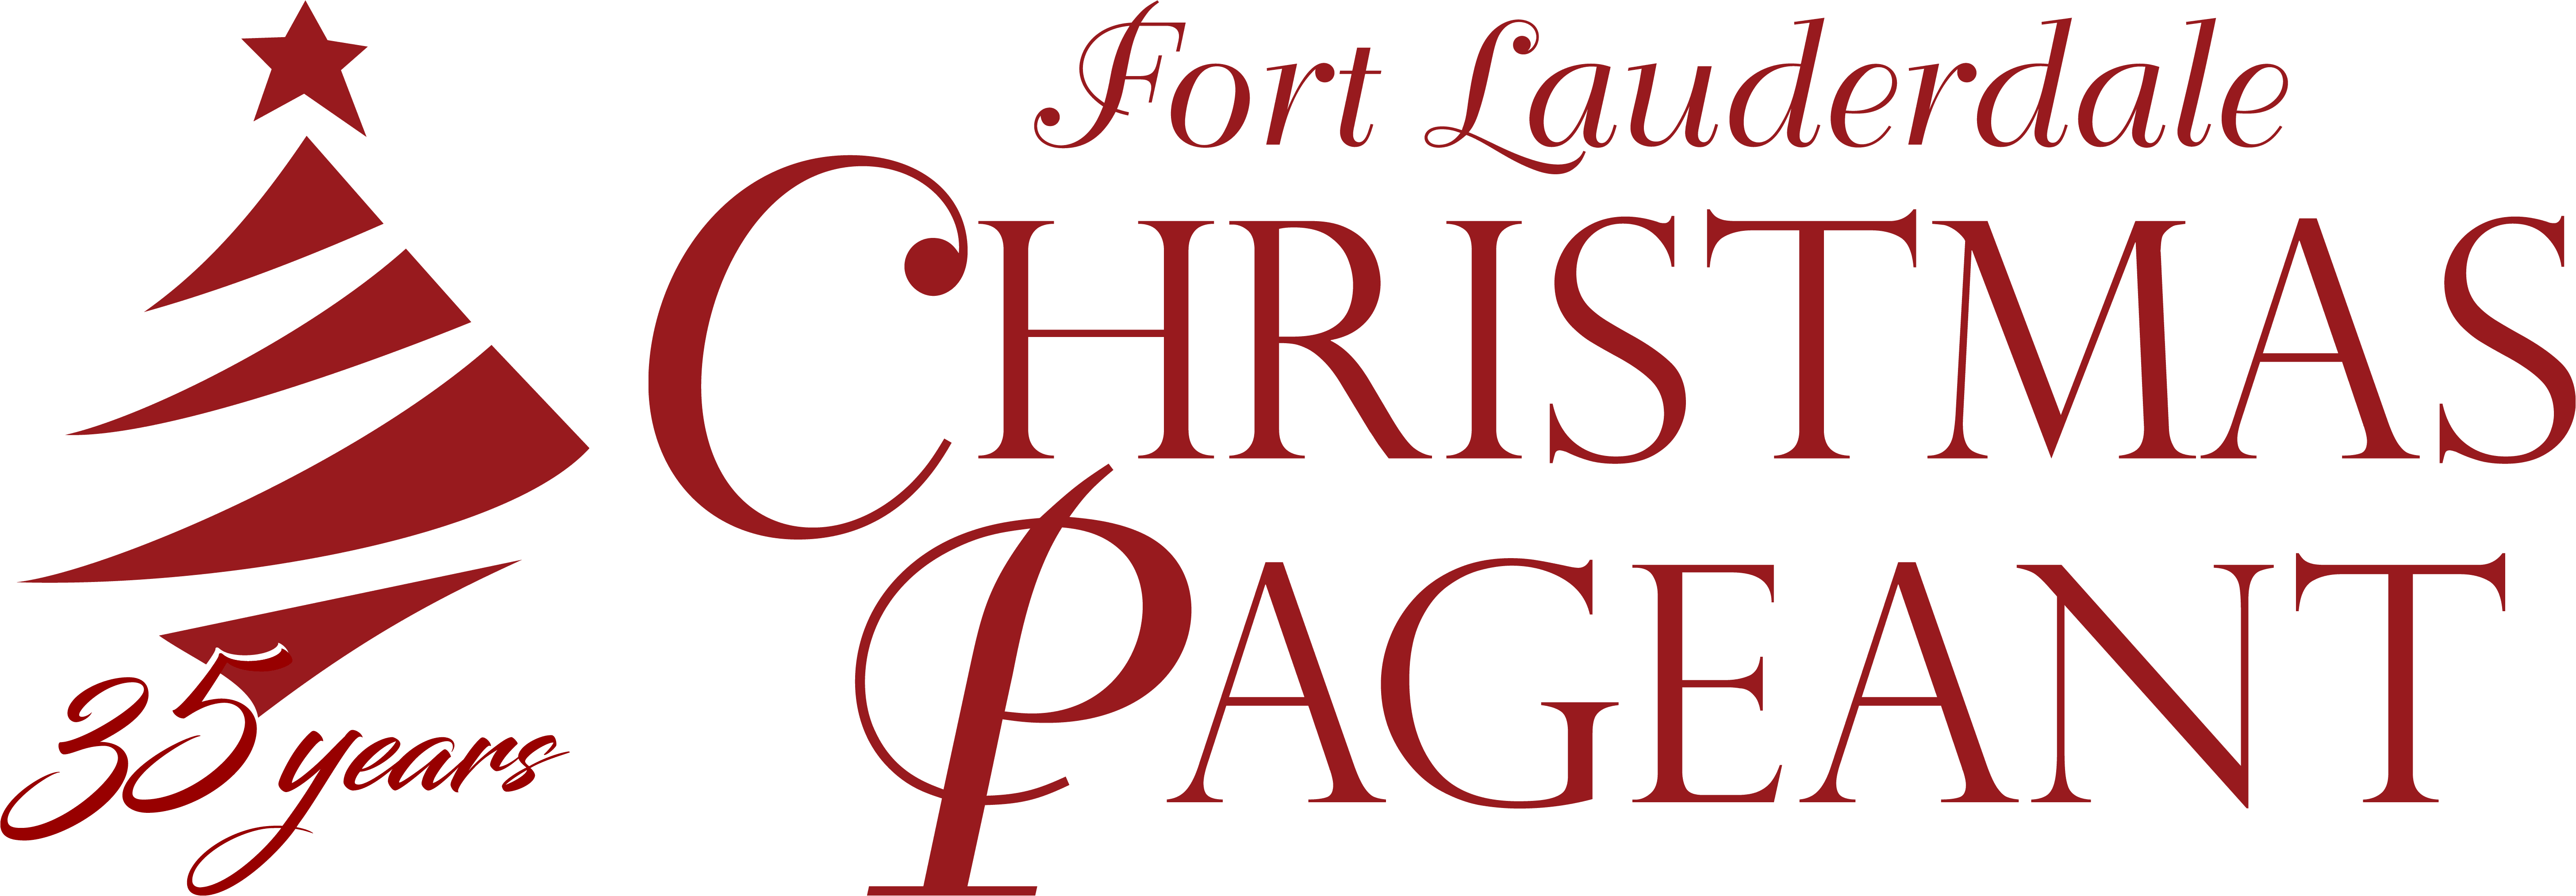 Boynton Beach Christmas Pageant 2020 Fort Lauderdale Christmas Pageant to Broward County's leading